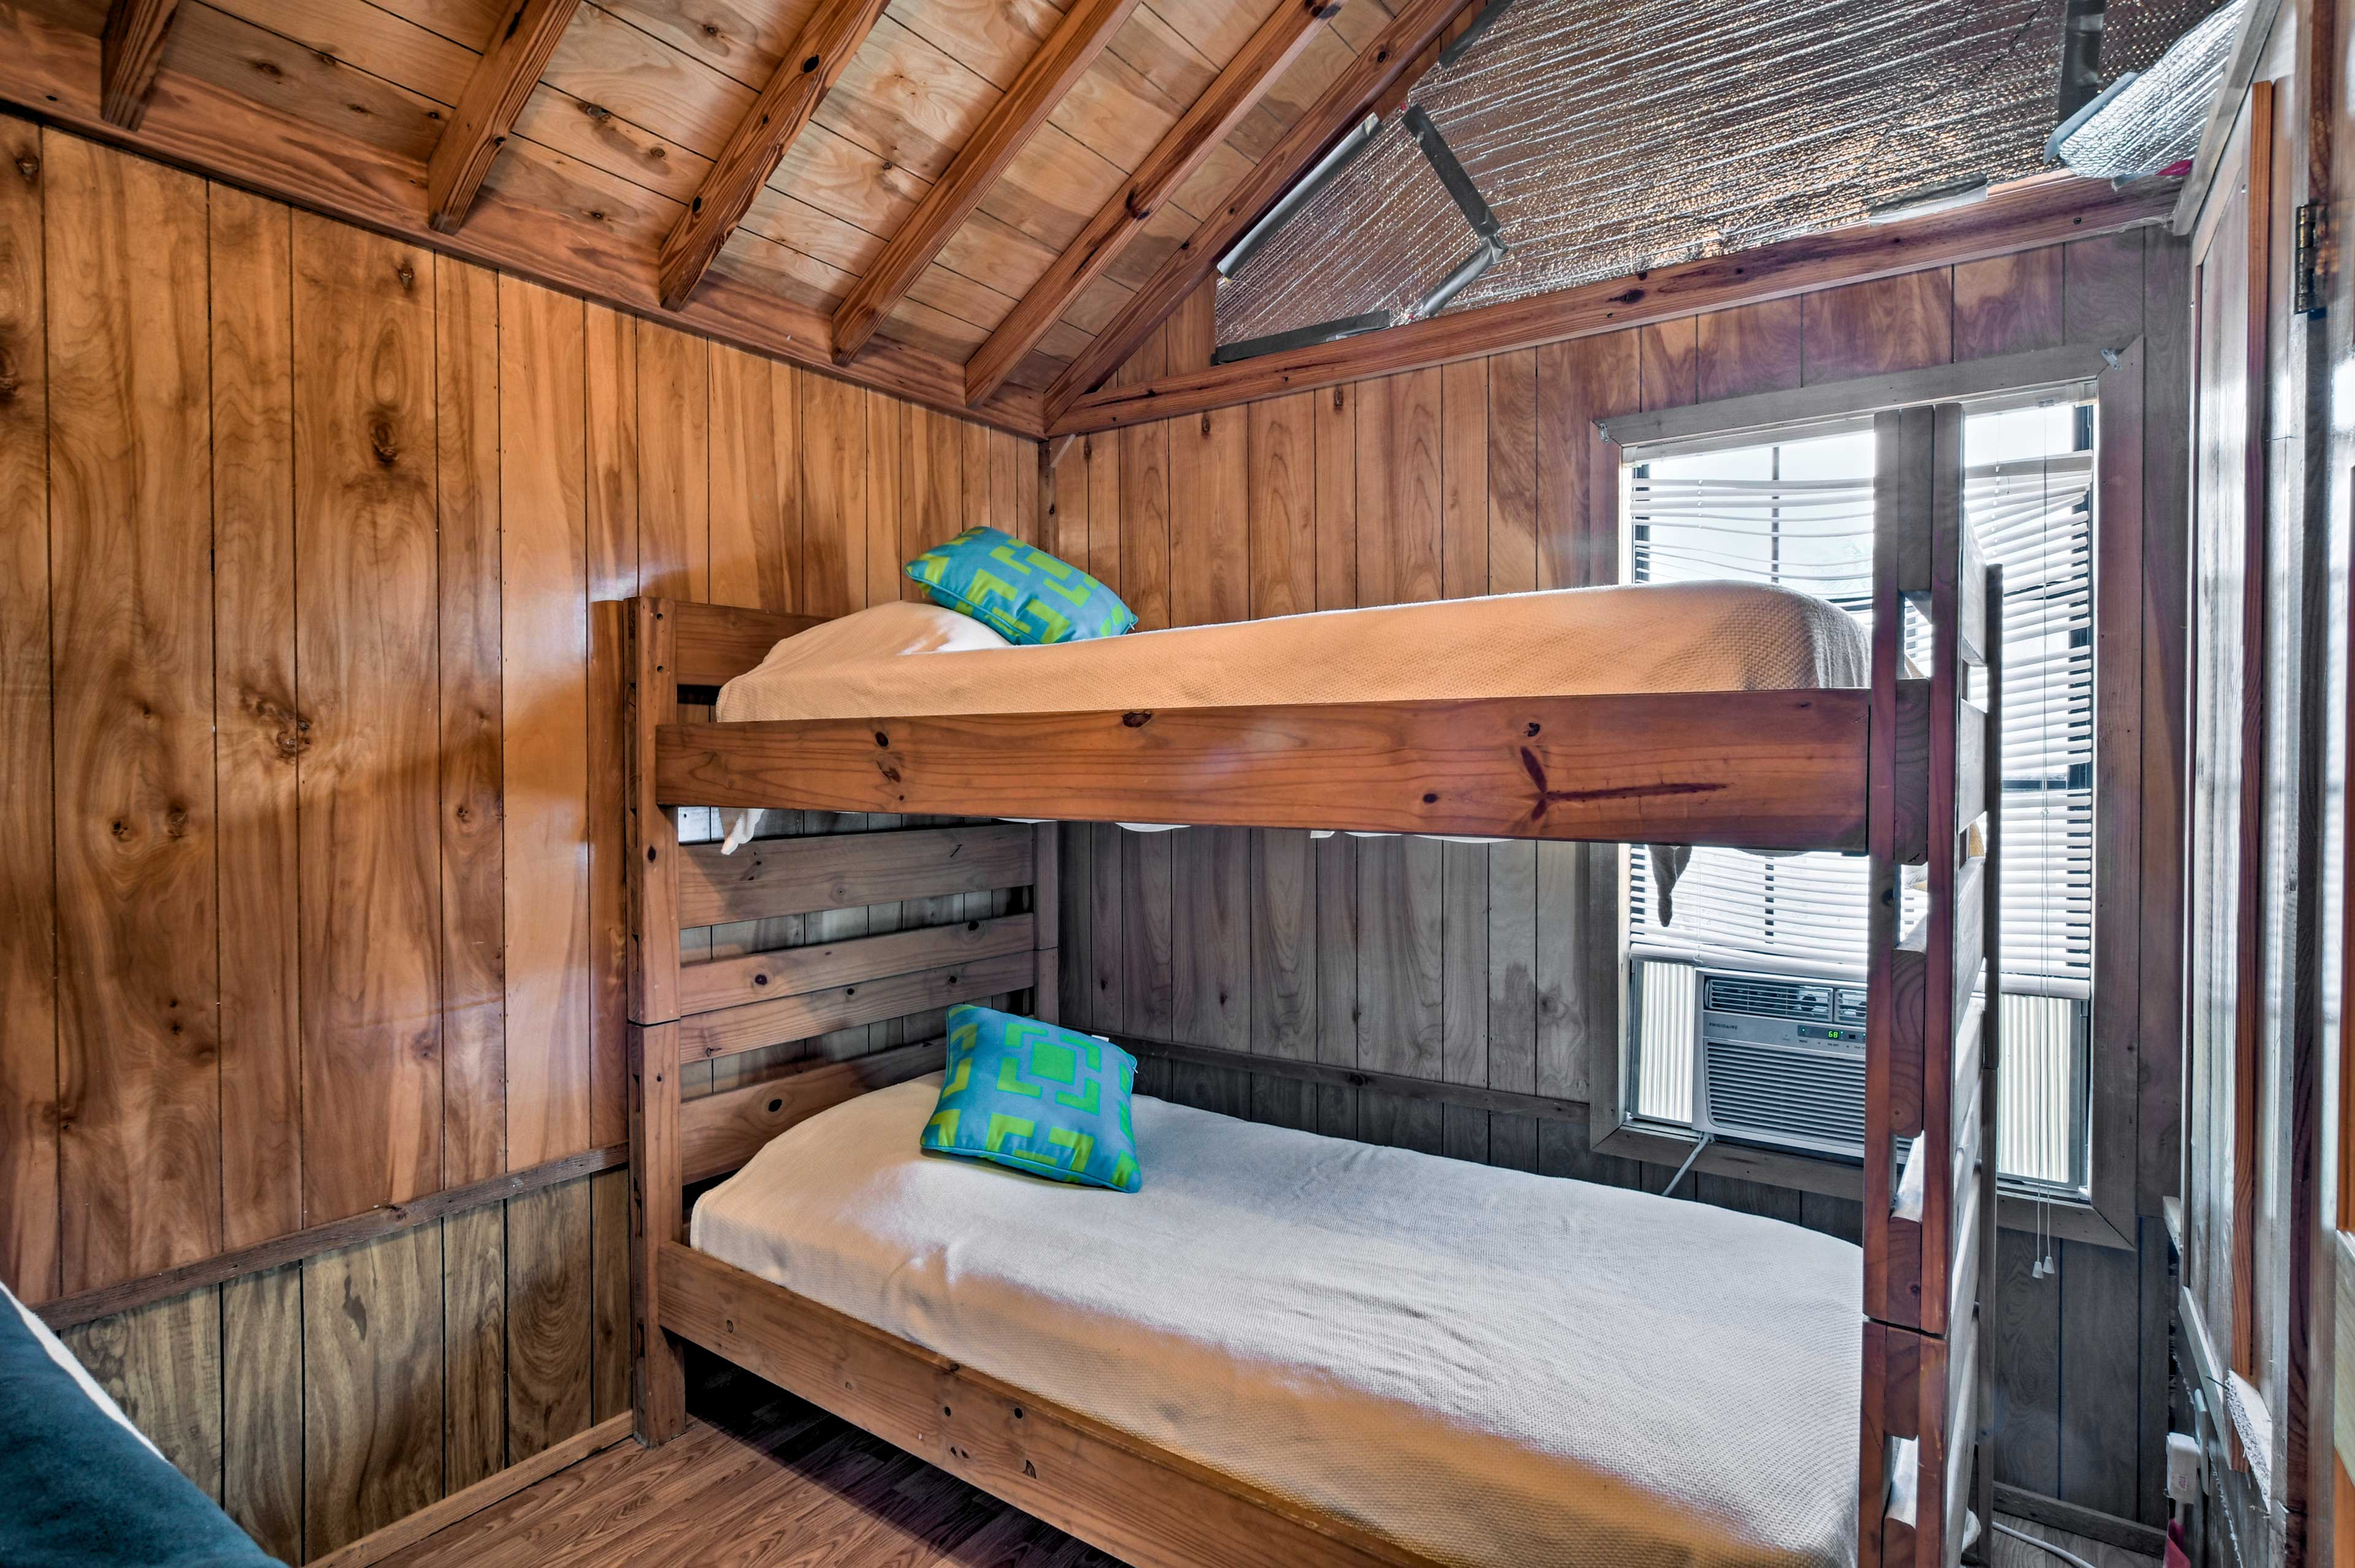 The kids will like the bunk bed.